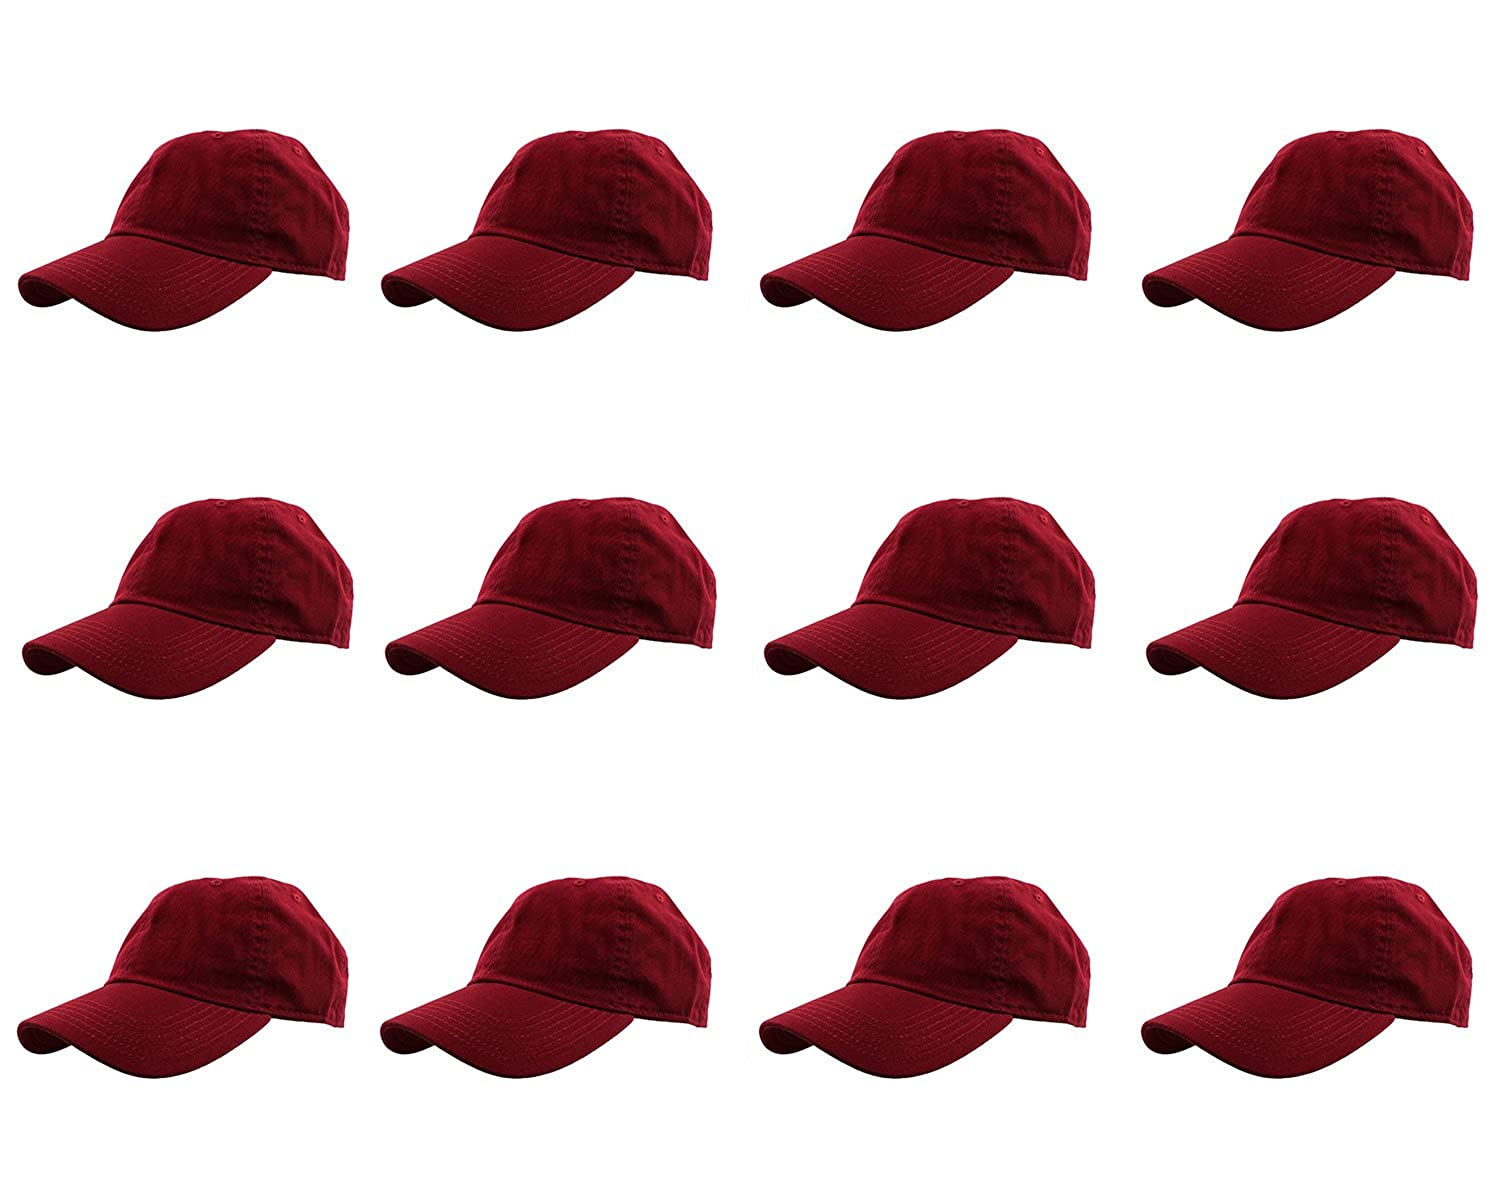 79a25f6b5a7e3b Gelante Baseball Caps 100% Cotton Plain Blank Adjustable Size Wholesale LOT  12 Pack (Army Green) at Amazon Men's Clothing store: